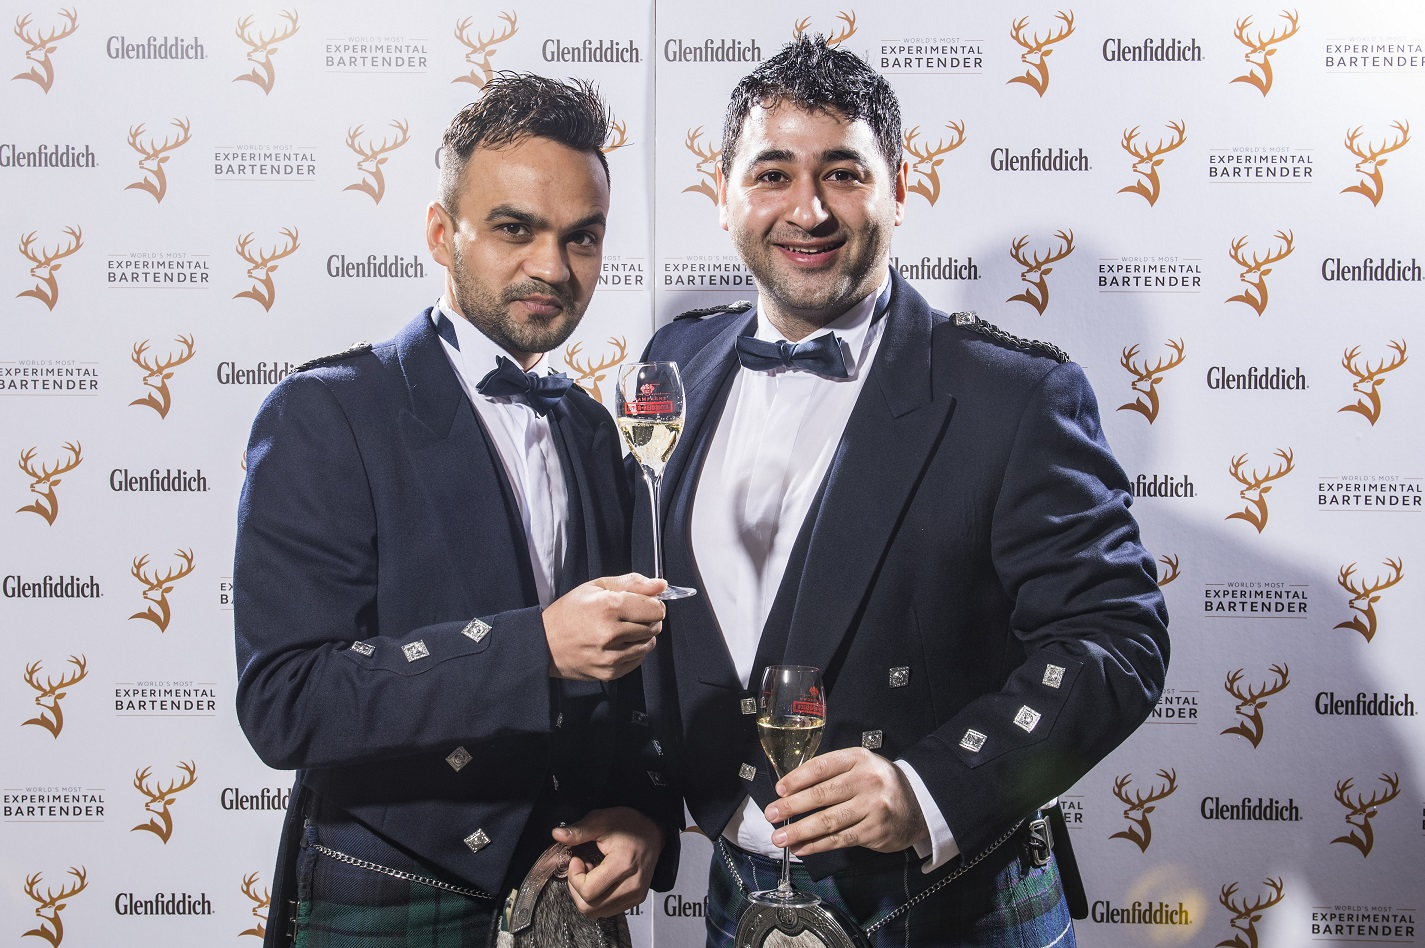 Glenfiddich announces Season III of the World's Most Experimental Bartender Competition